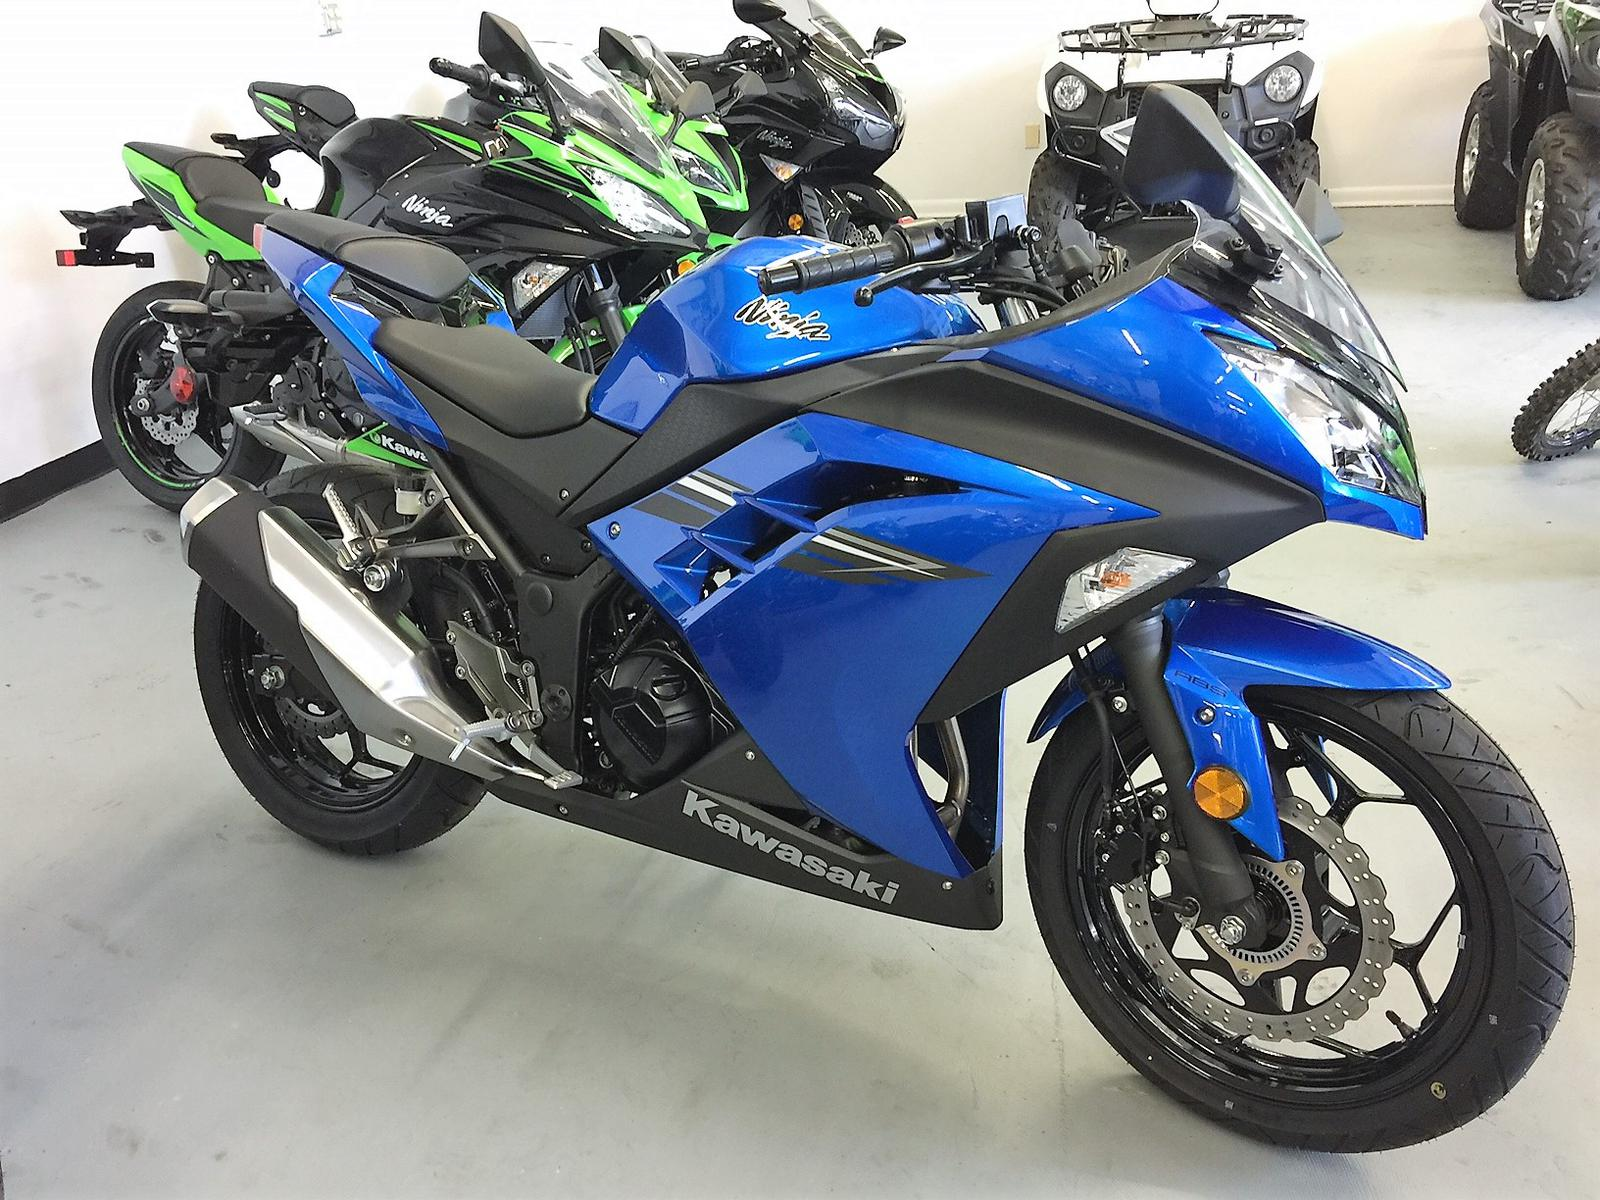 2017 Kawasaki NINJA 300 ABS WINTER For Sale In Shreveport LA